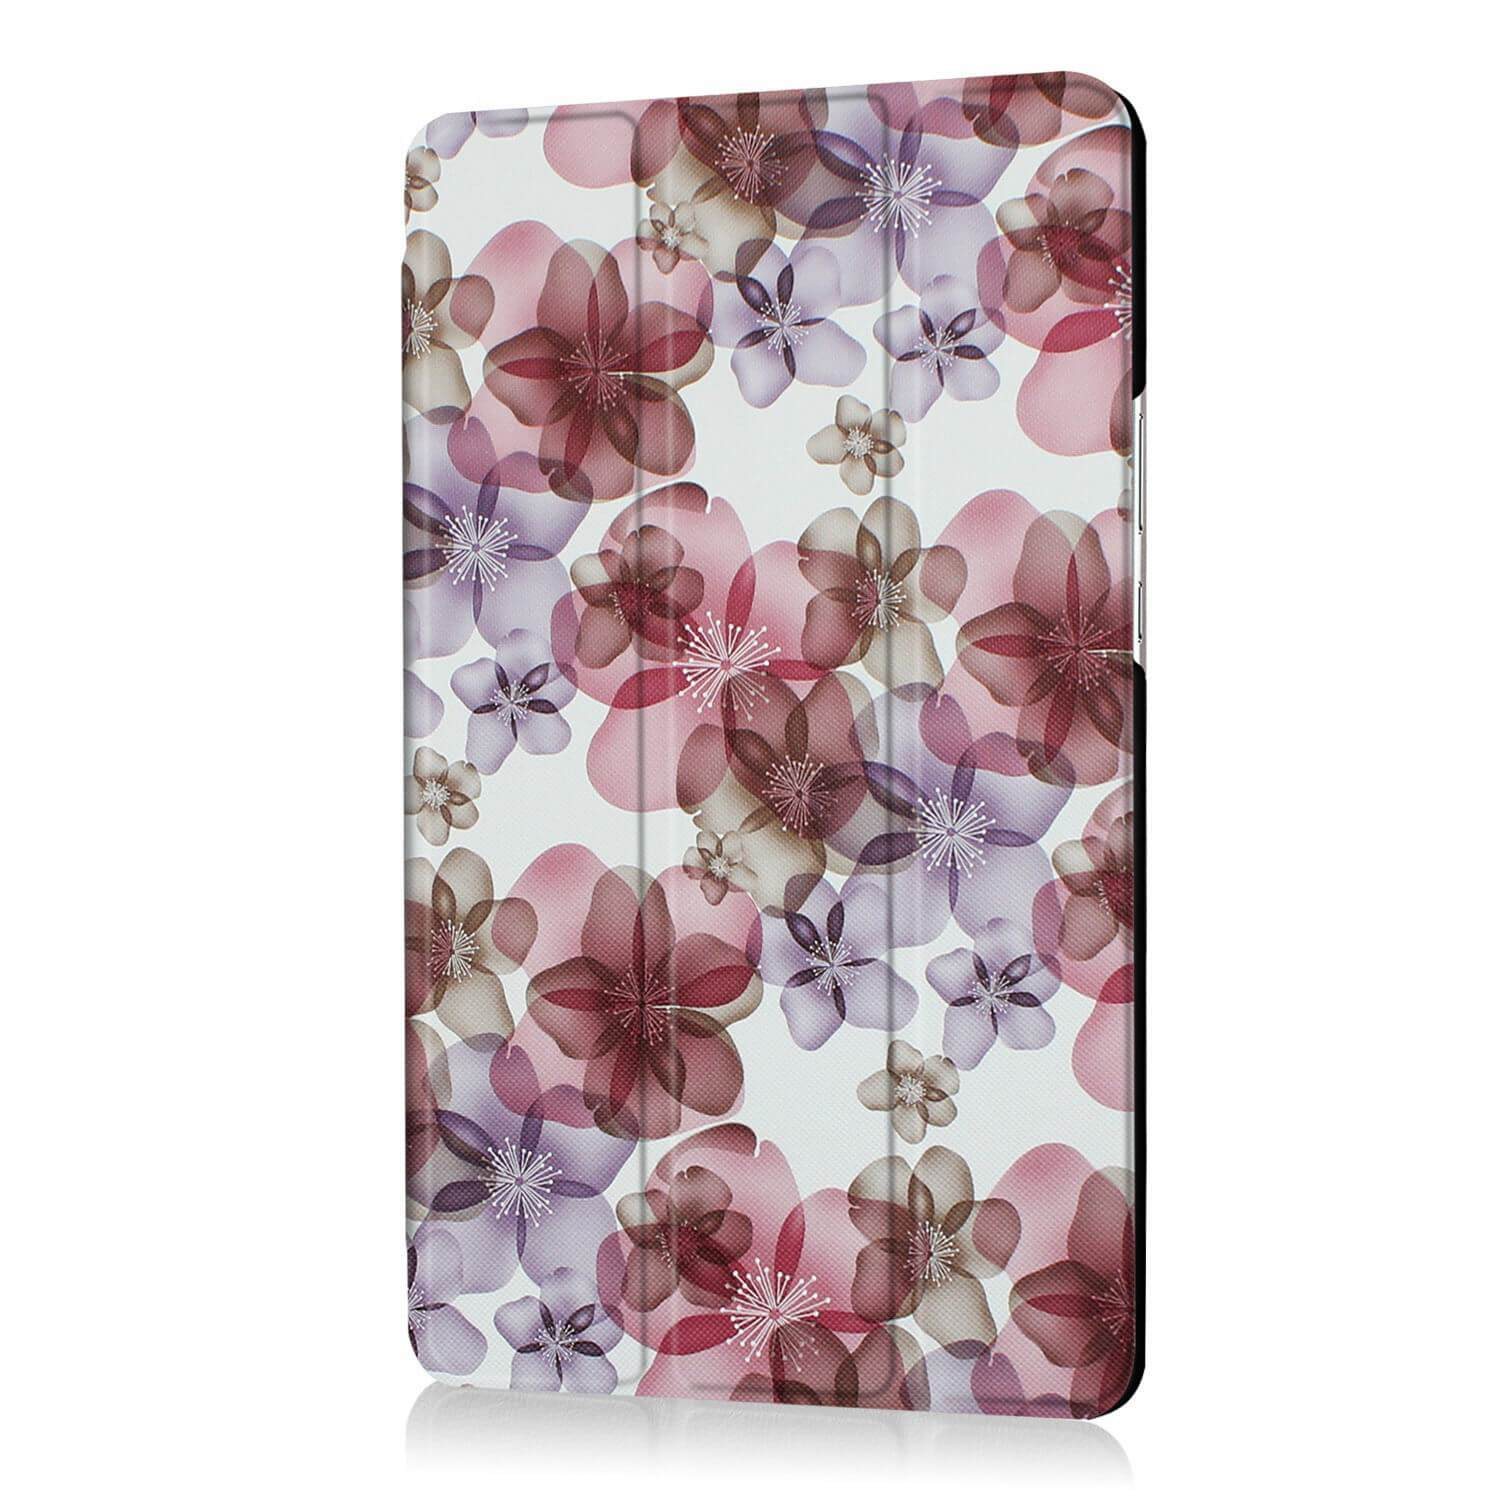 mediapad m3 bright painted case with pictures of paris butterflies and other Color flowers: